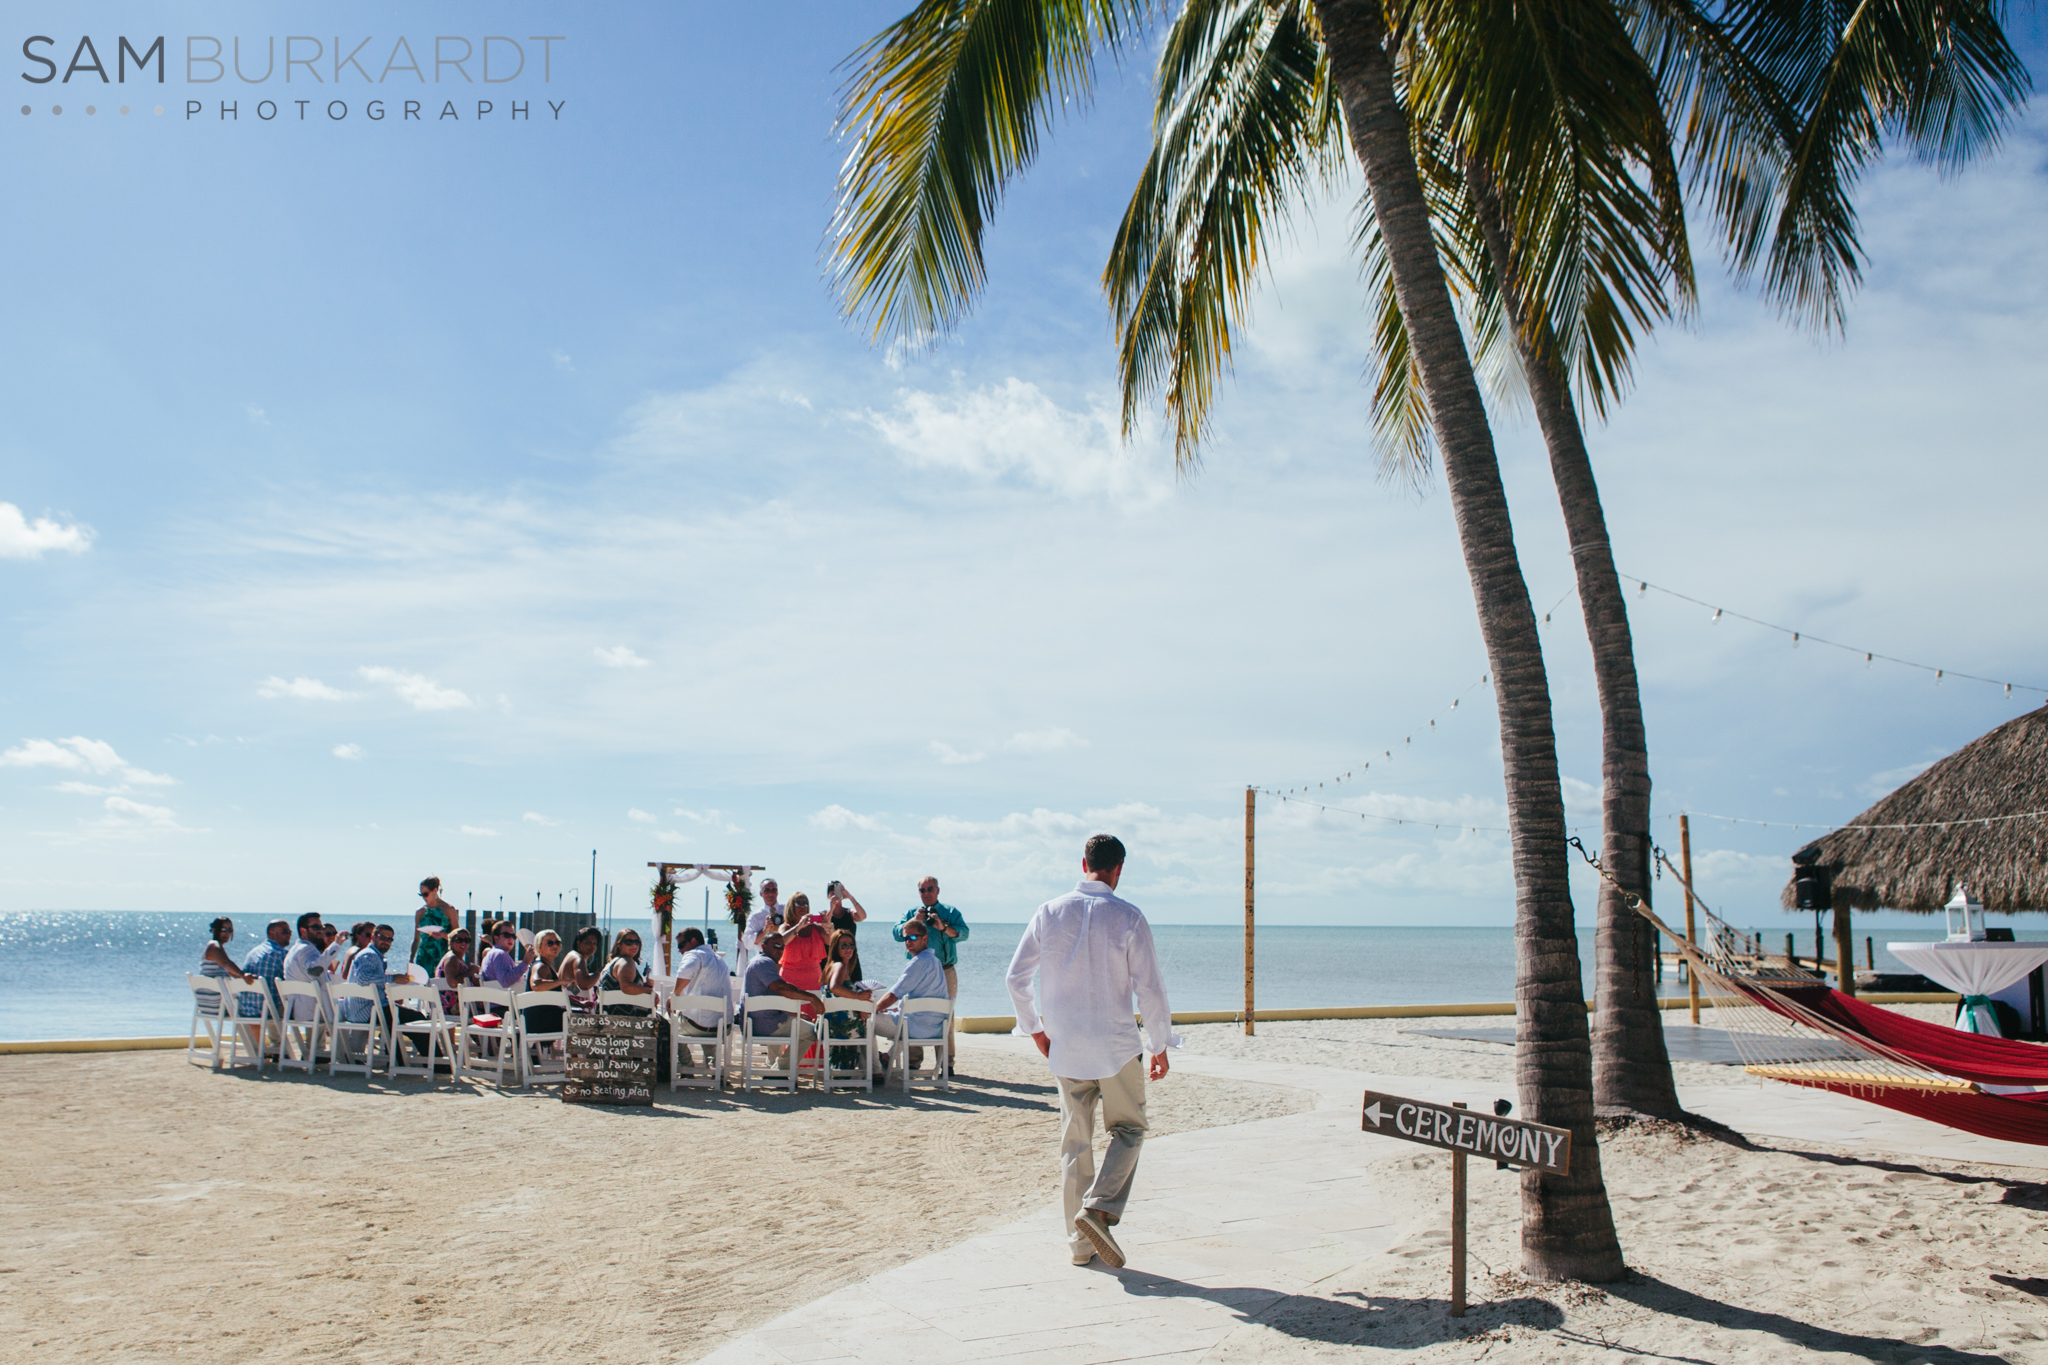 samburkardt_key_west_wedding_marathon_florida_summer_beach_ocean_front_0024.jpg